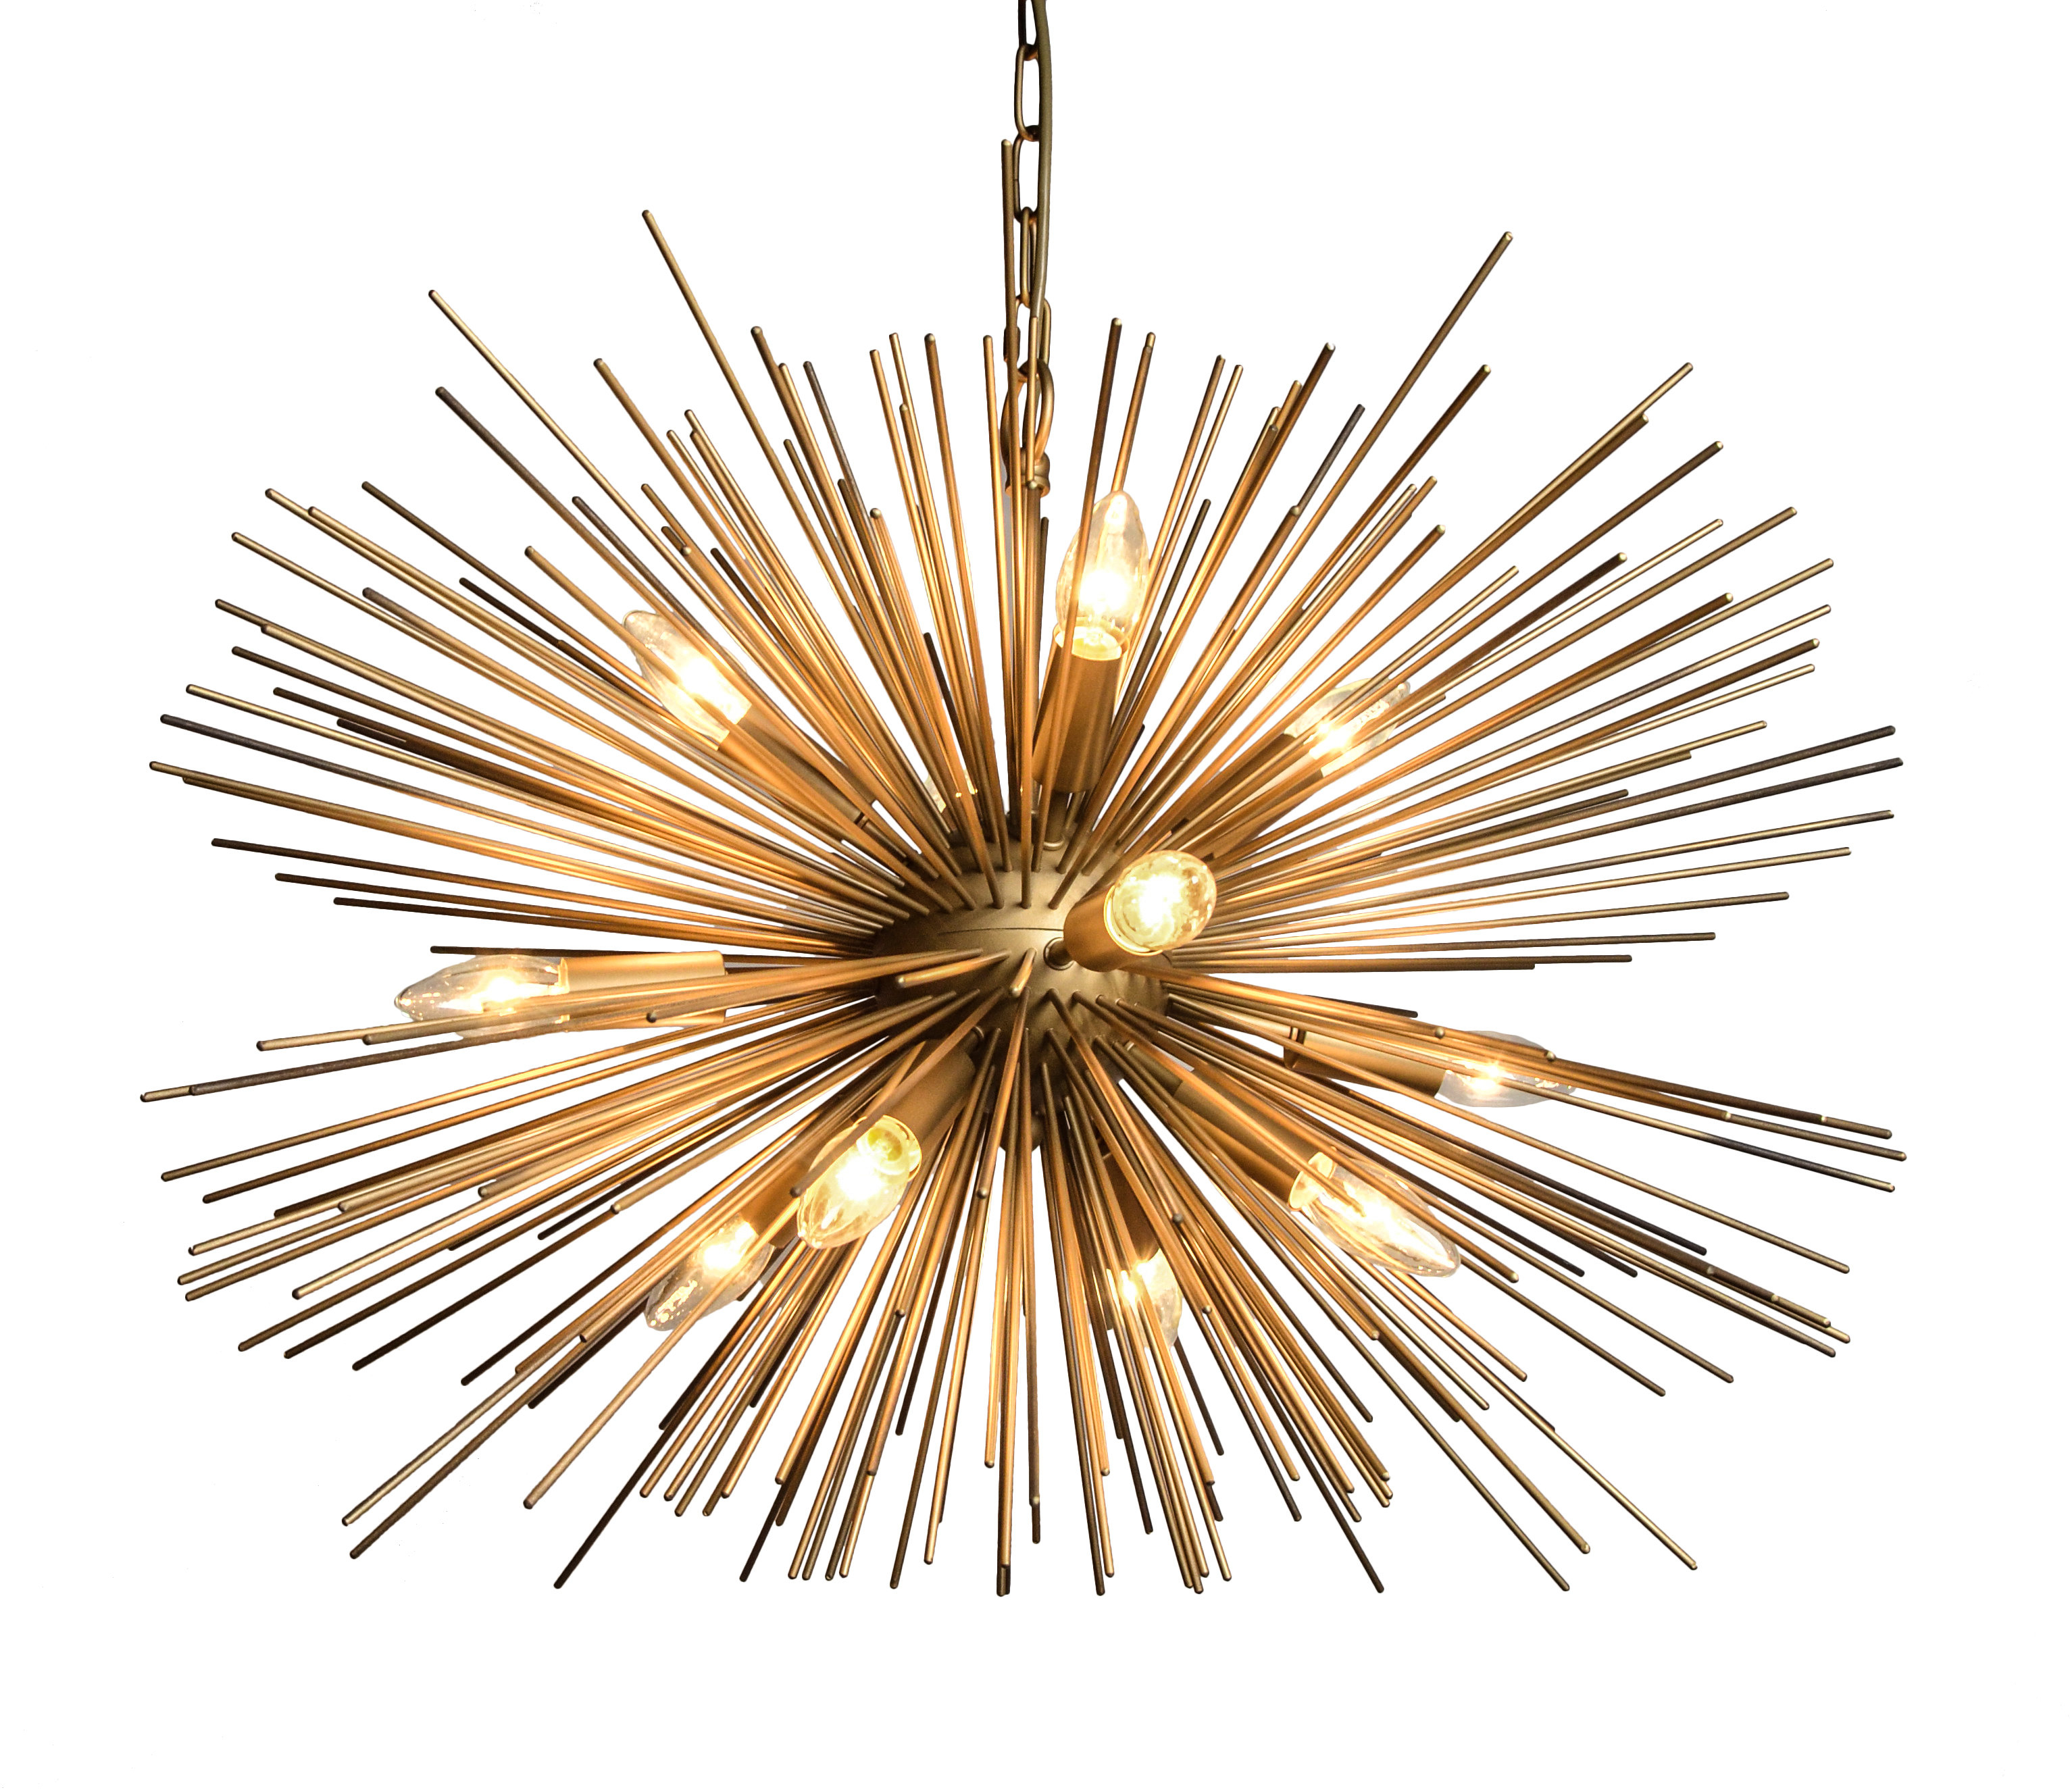 Nelly 12 Light Sputnik Chandeliers With Newest Nelly 12 Light Sputnik Chandelier (View 10 of 20)